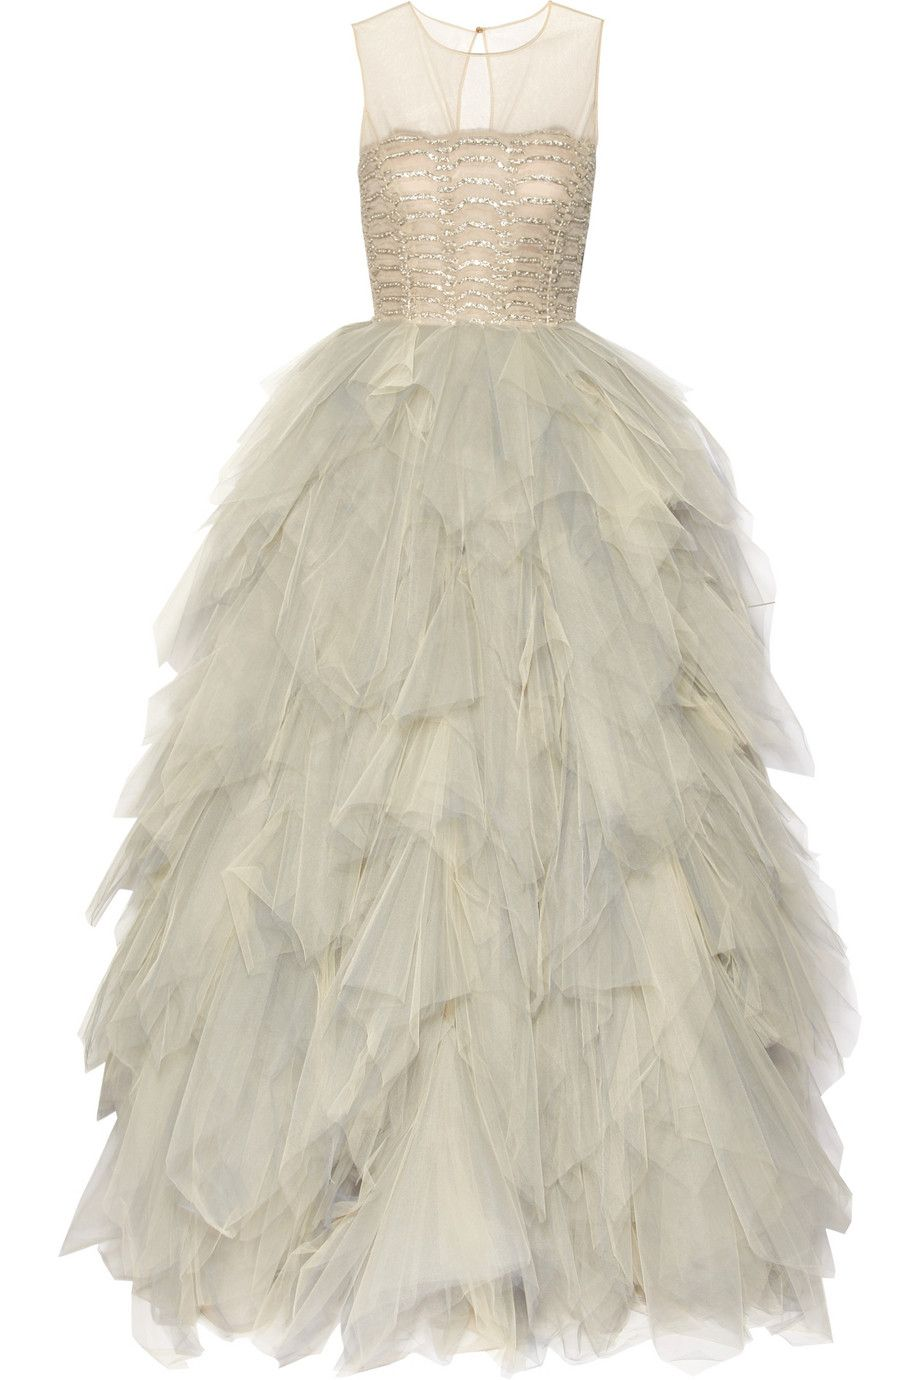 Blair waldorf wedding dress  Gucci For  Tulle gown Oscar de la Renta and Gowns